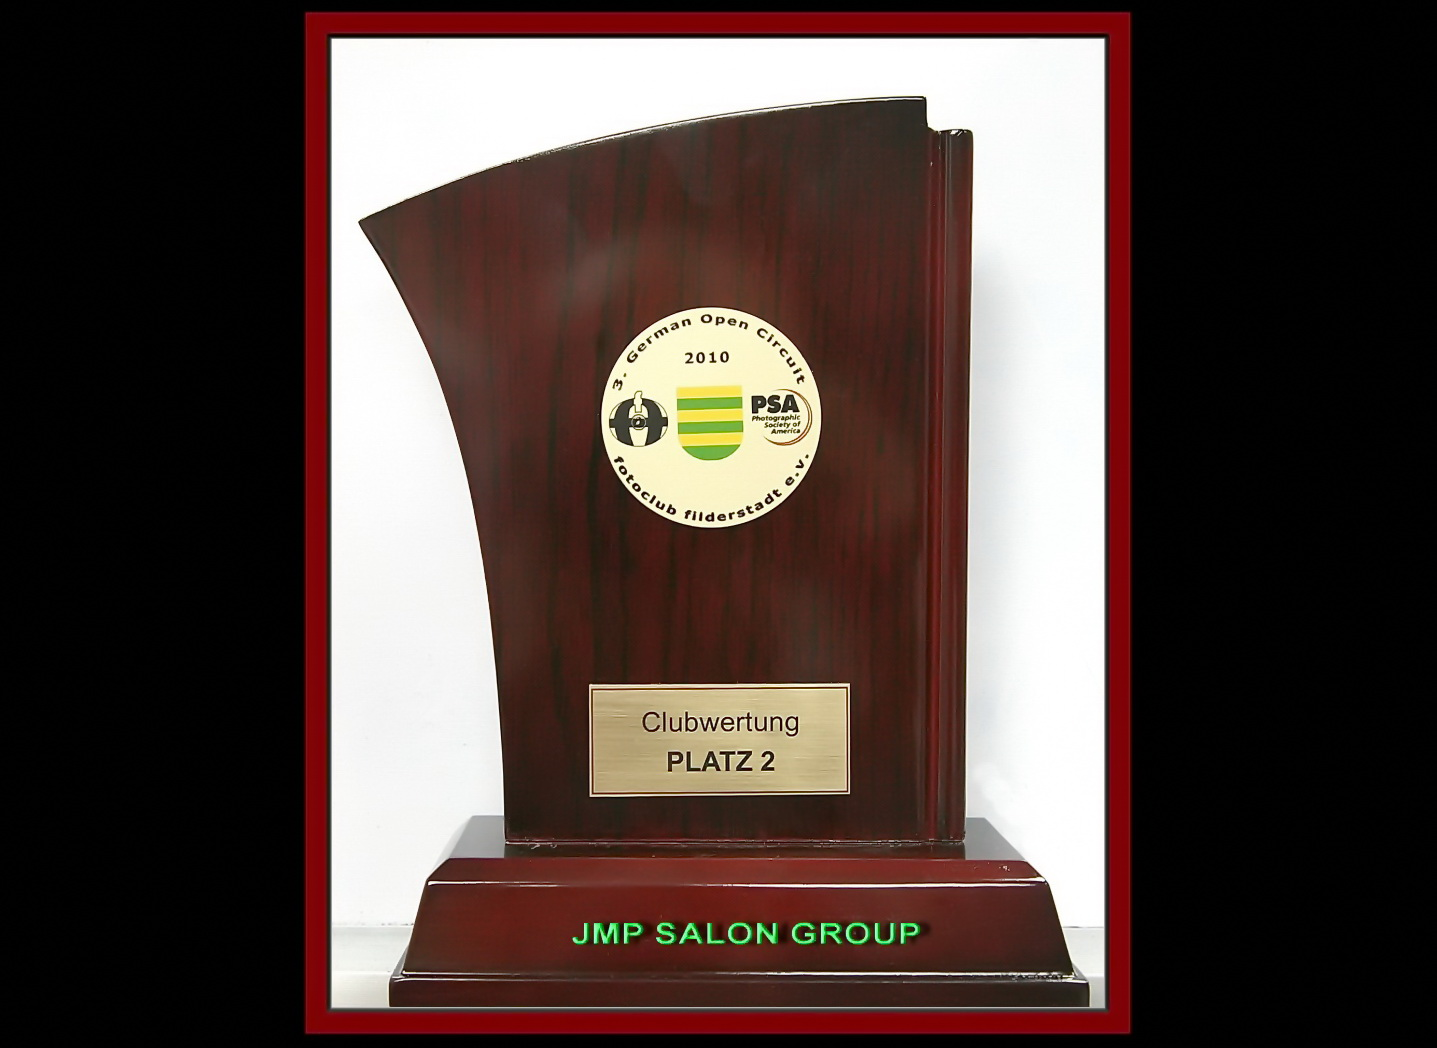 JMP Salon Group (2nd place) German Circuit